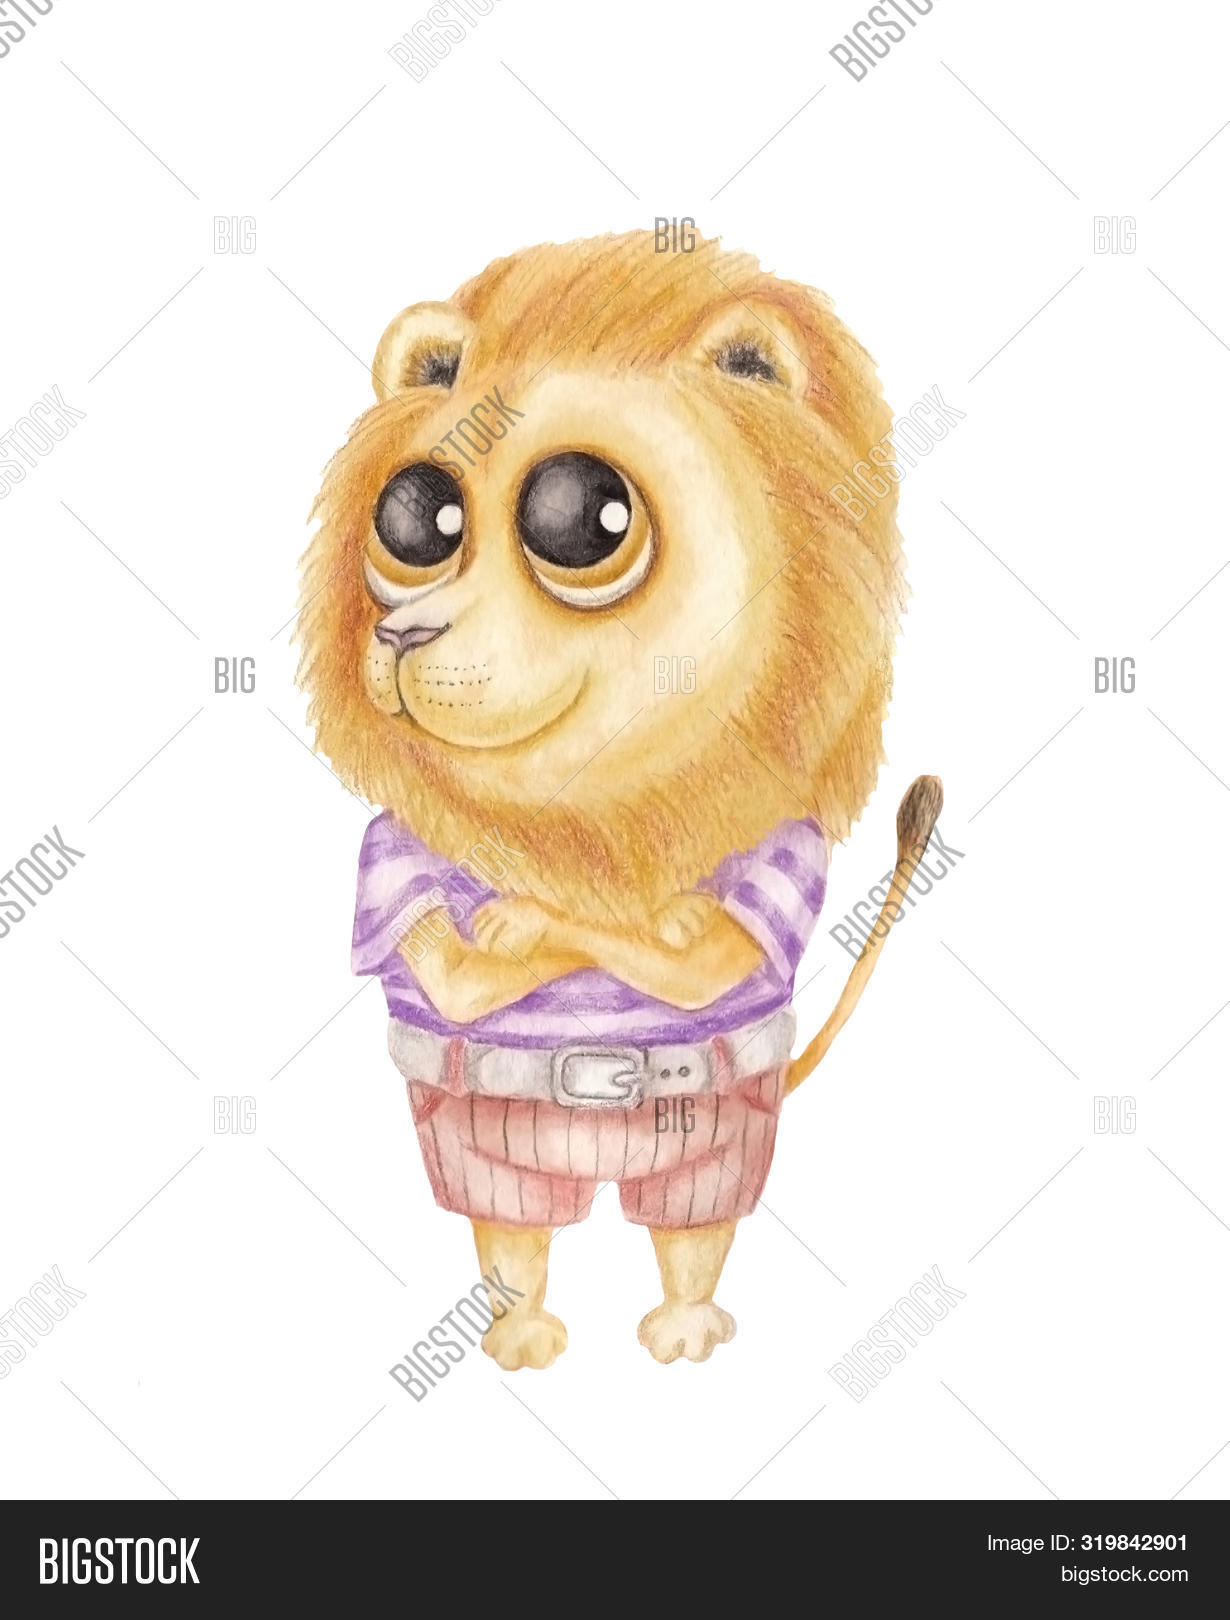 Cute Lion Boy Big Eyes Image Photo Free Trial Bigstock